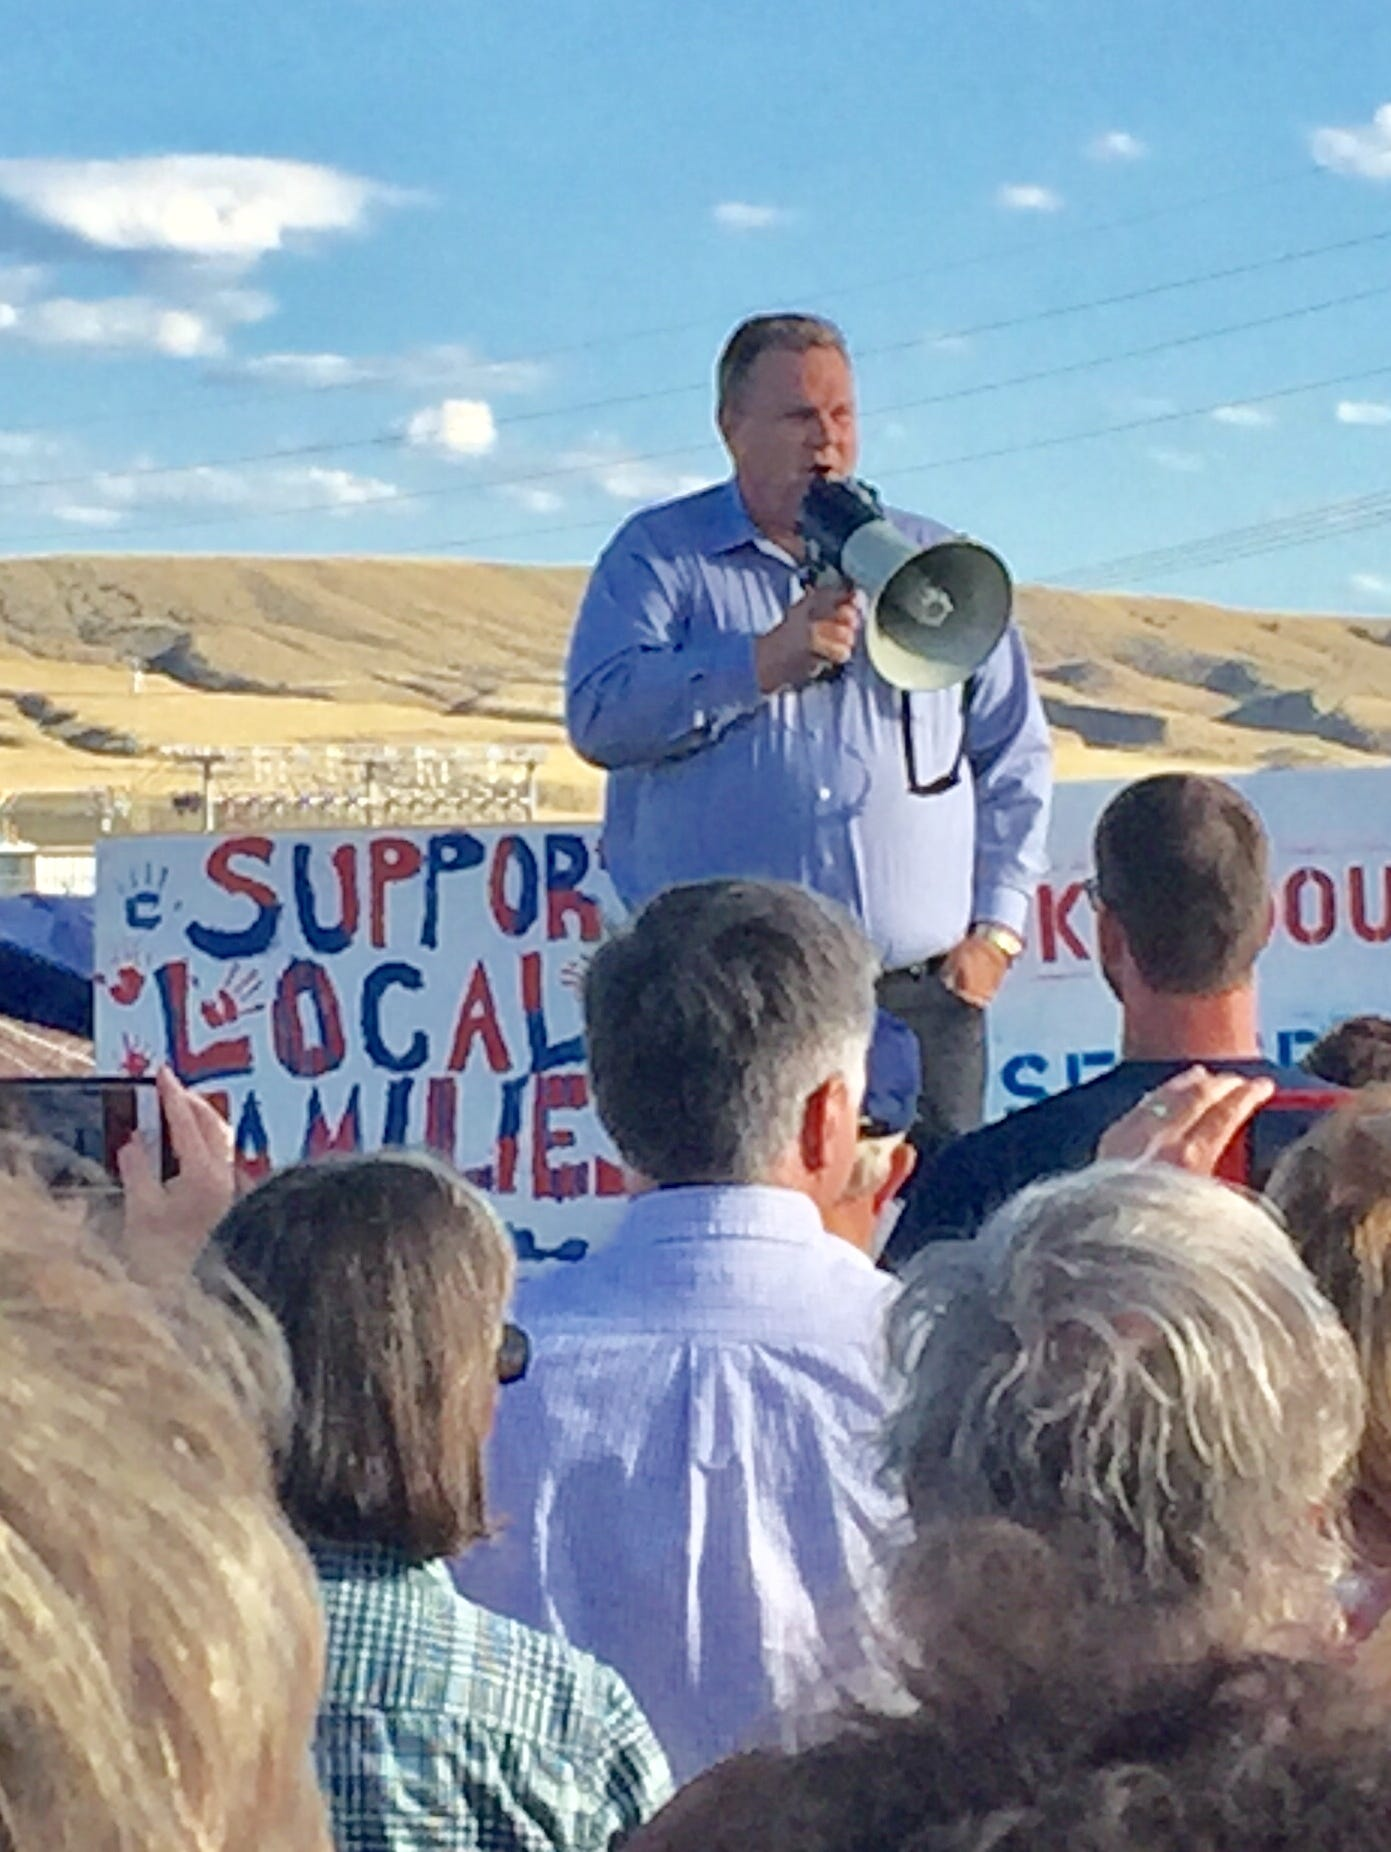 U.S. Sen. Jon Tester, D-Mont., supports workers on strike in Three Forks on Monday as part of Labor Day.